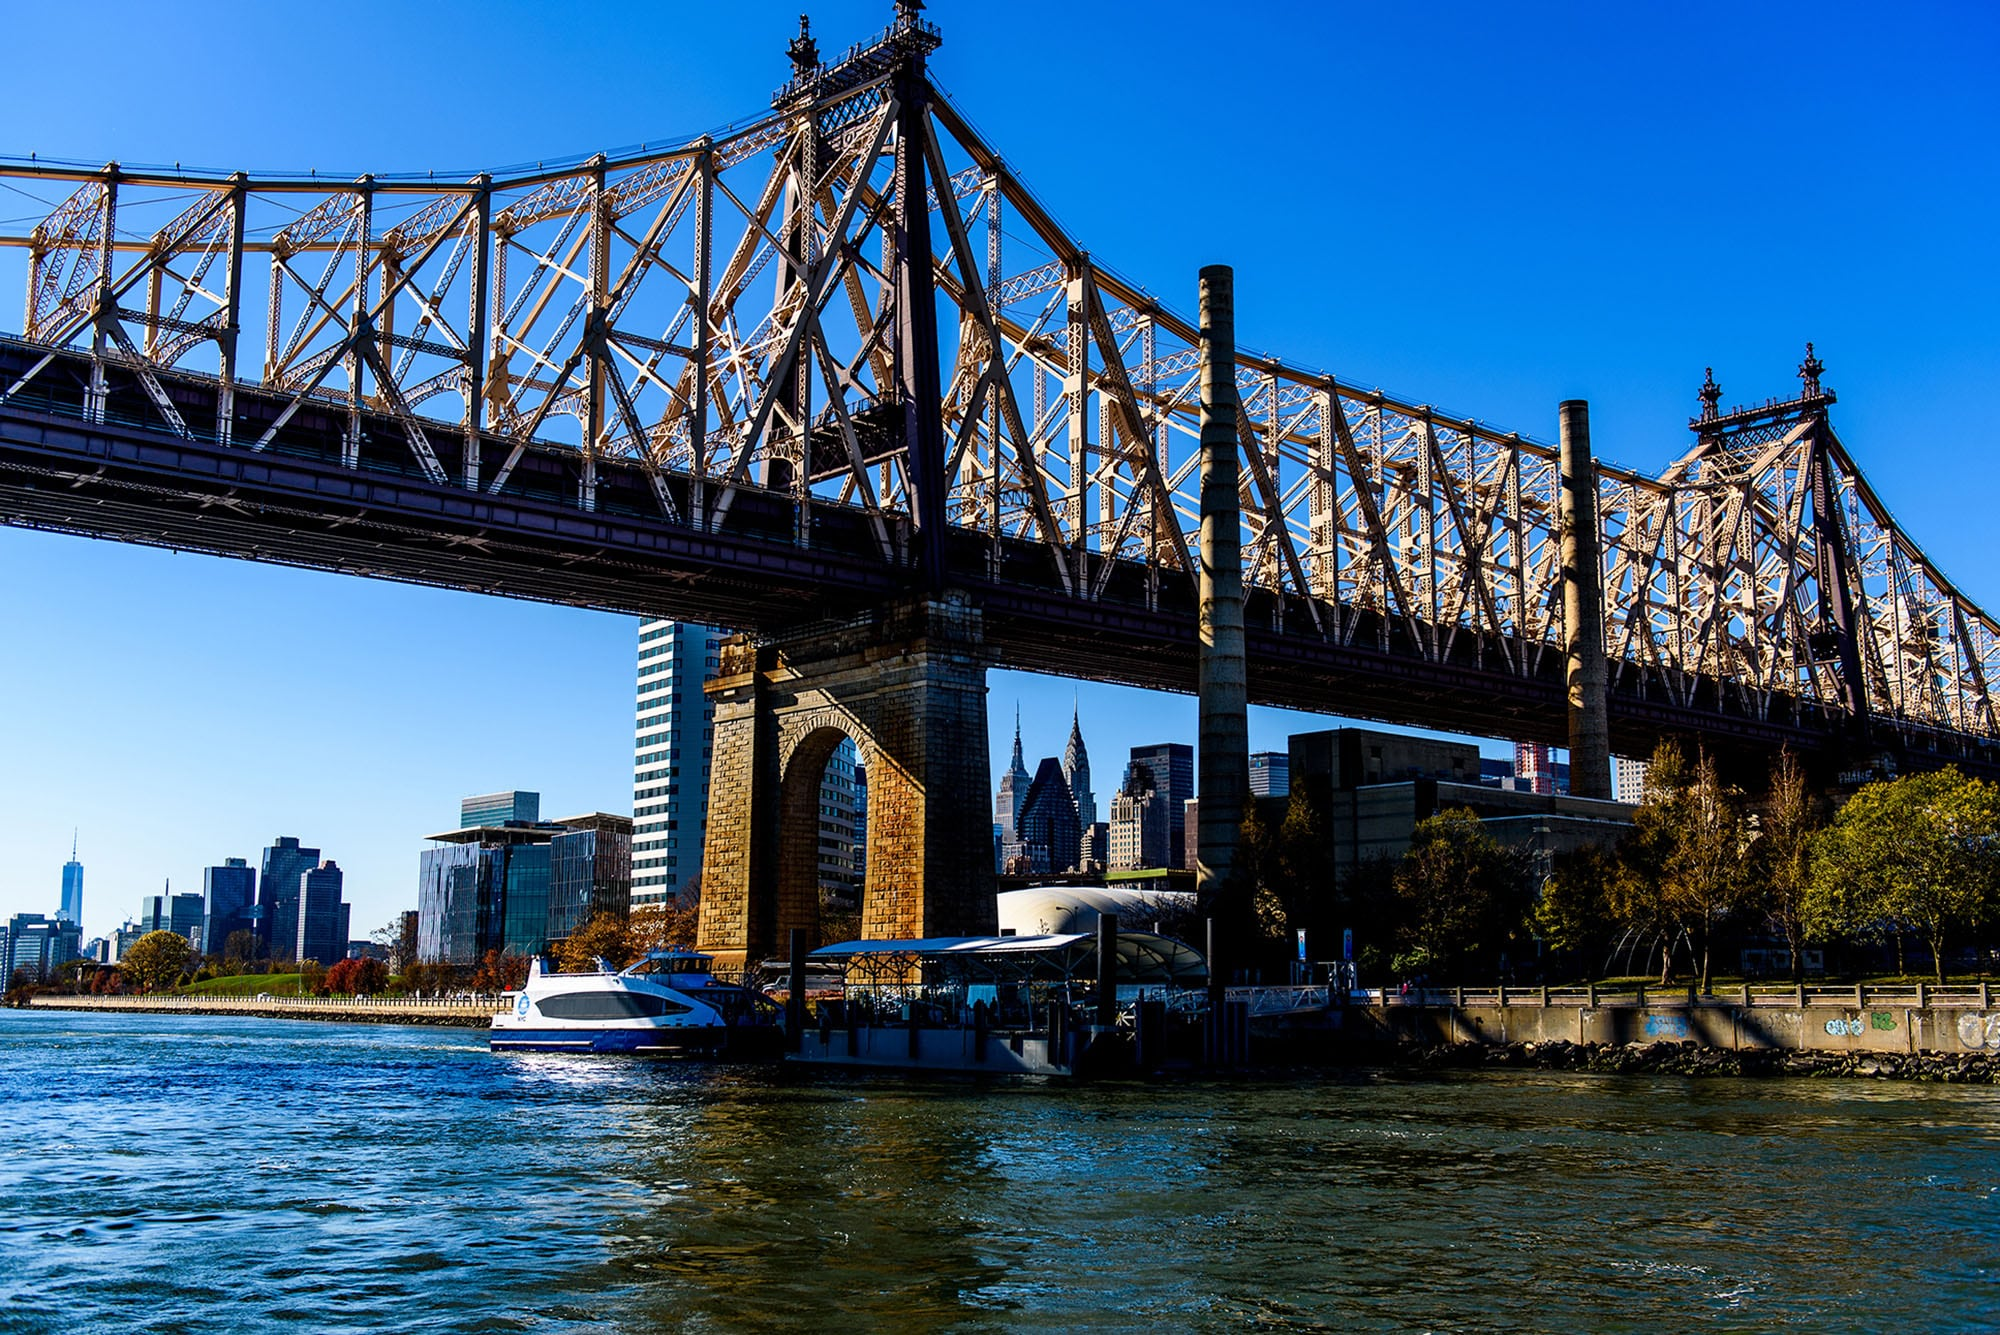 An Astoria Route ferry stops at Roosevelt Island. Photo courtesy of NYC Ferry.